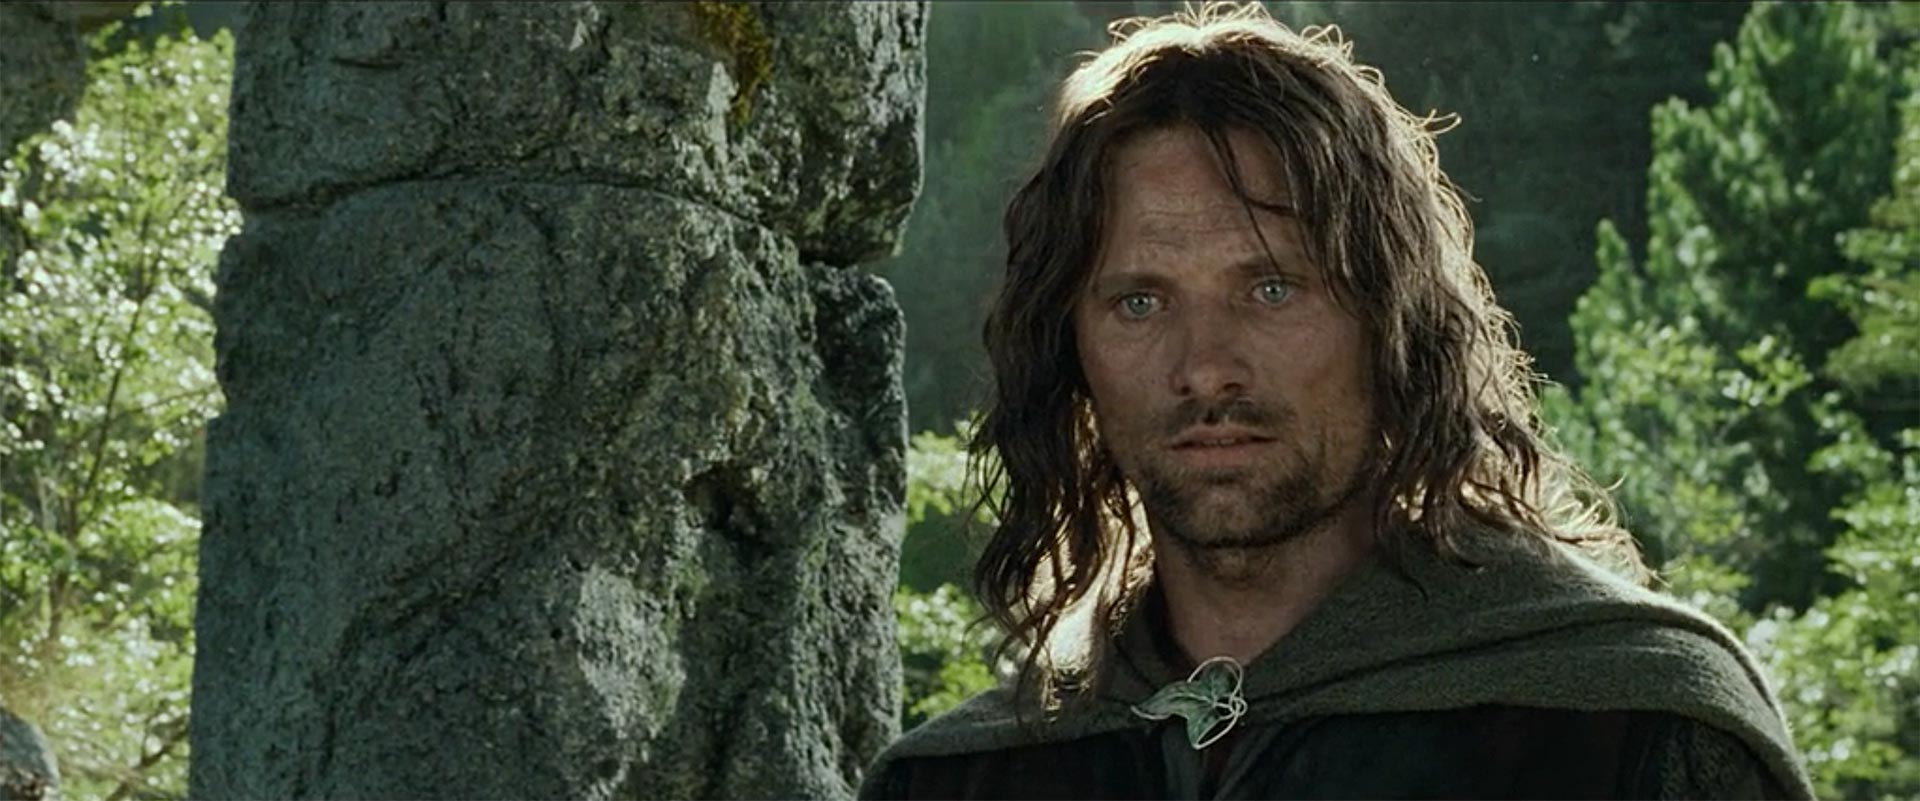 the lord of the rings the fellowship of the ring 4k digital still